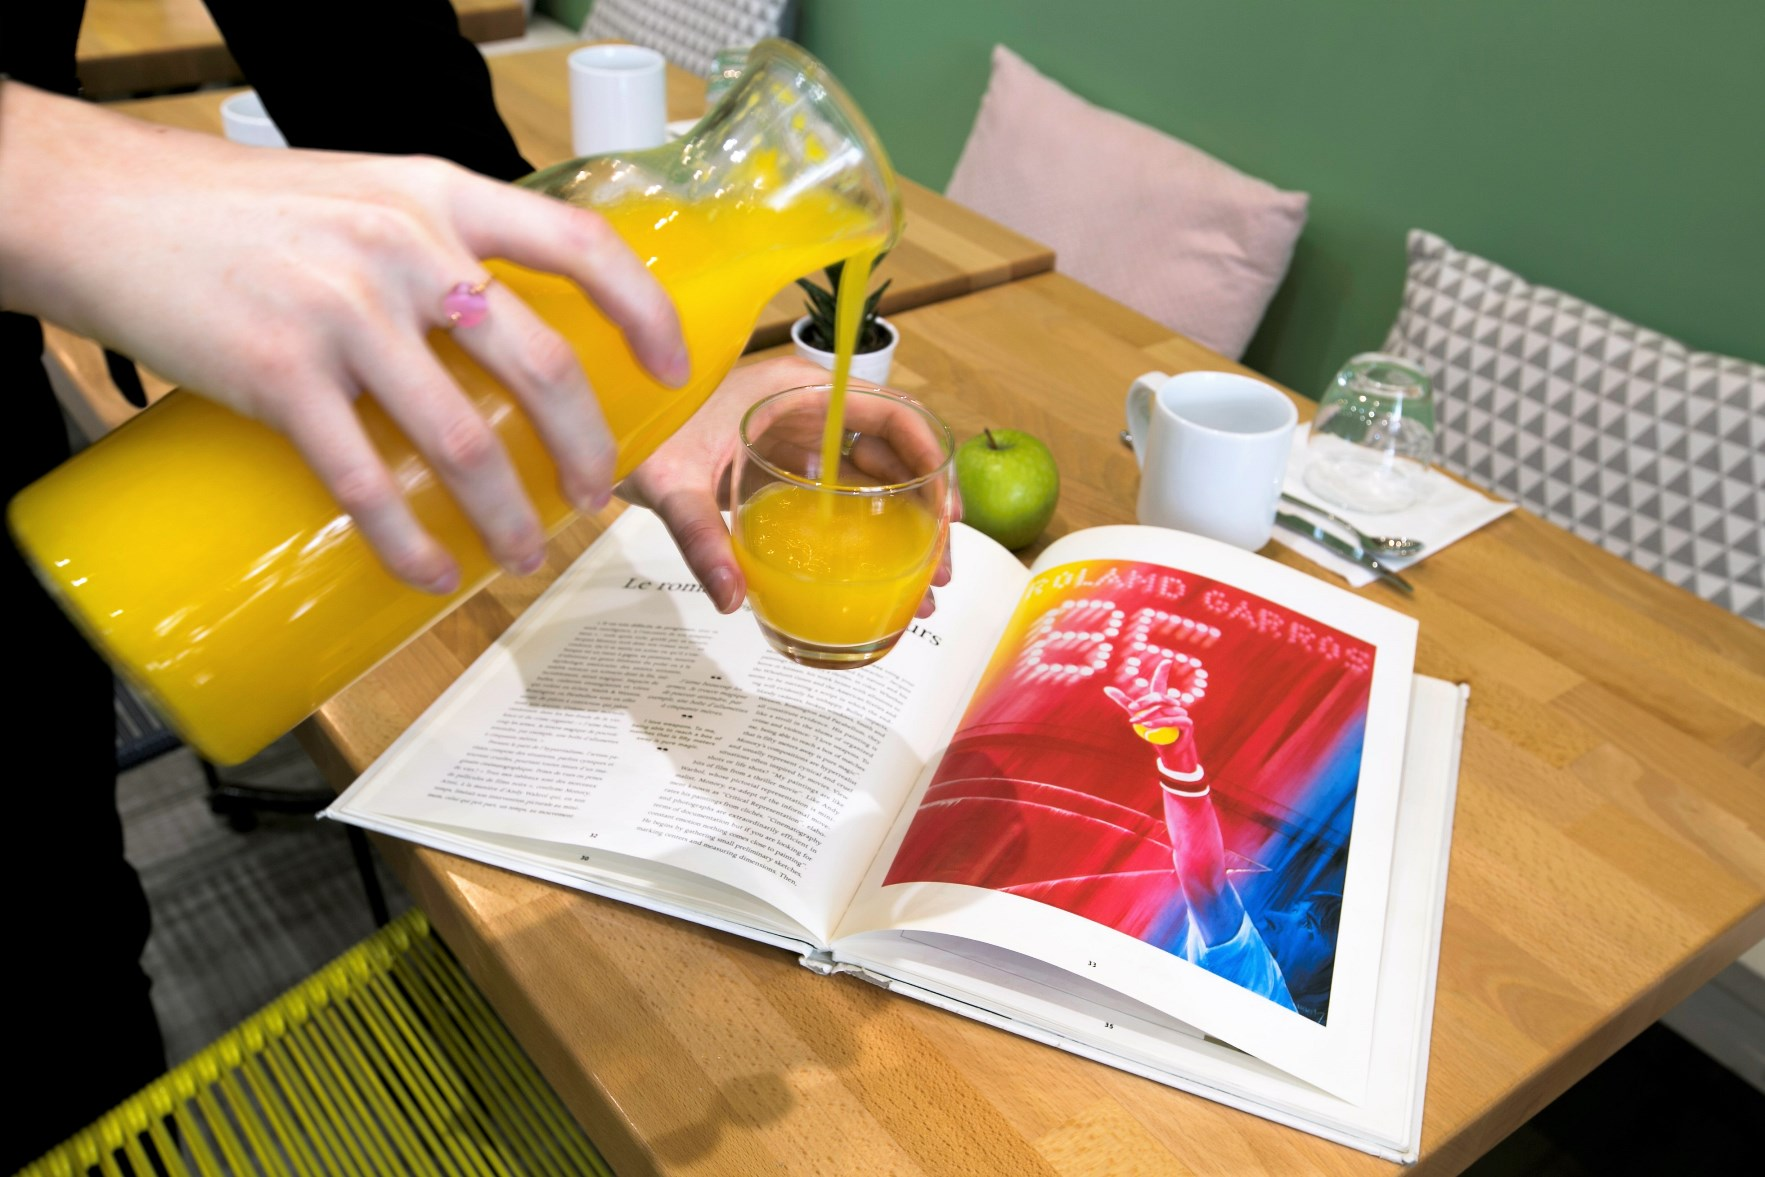 148/Photos/Photo Olympic/Hotel_Olympic_Boulogne_Billancourt_fresh_orange_juice.jpg